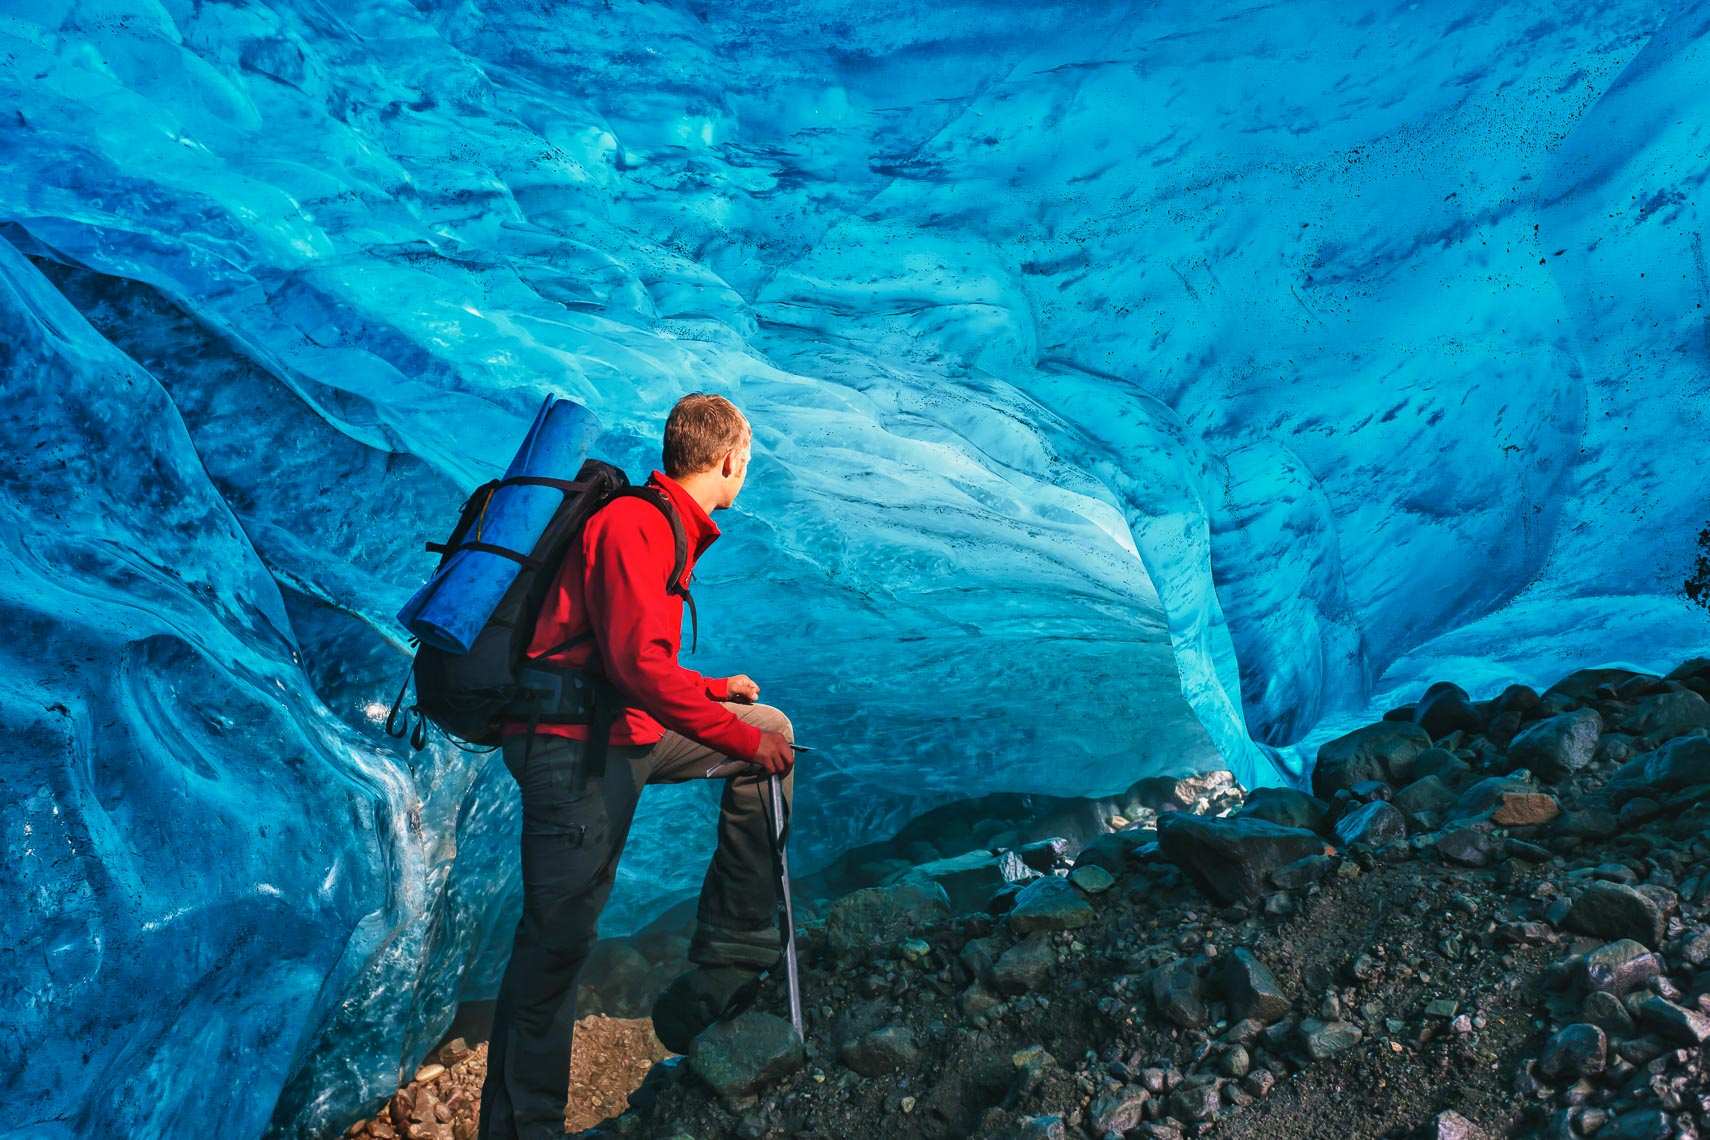 Guided Adventure Ice Cave Hike | Michael DeYoung